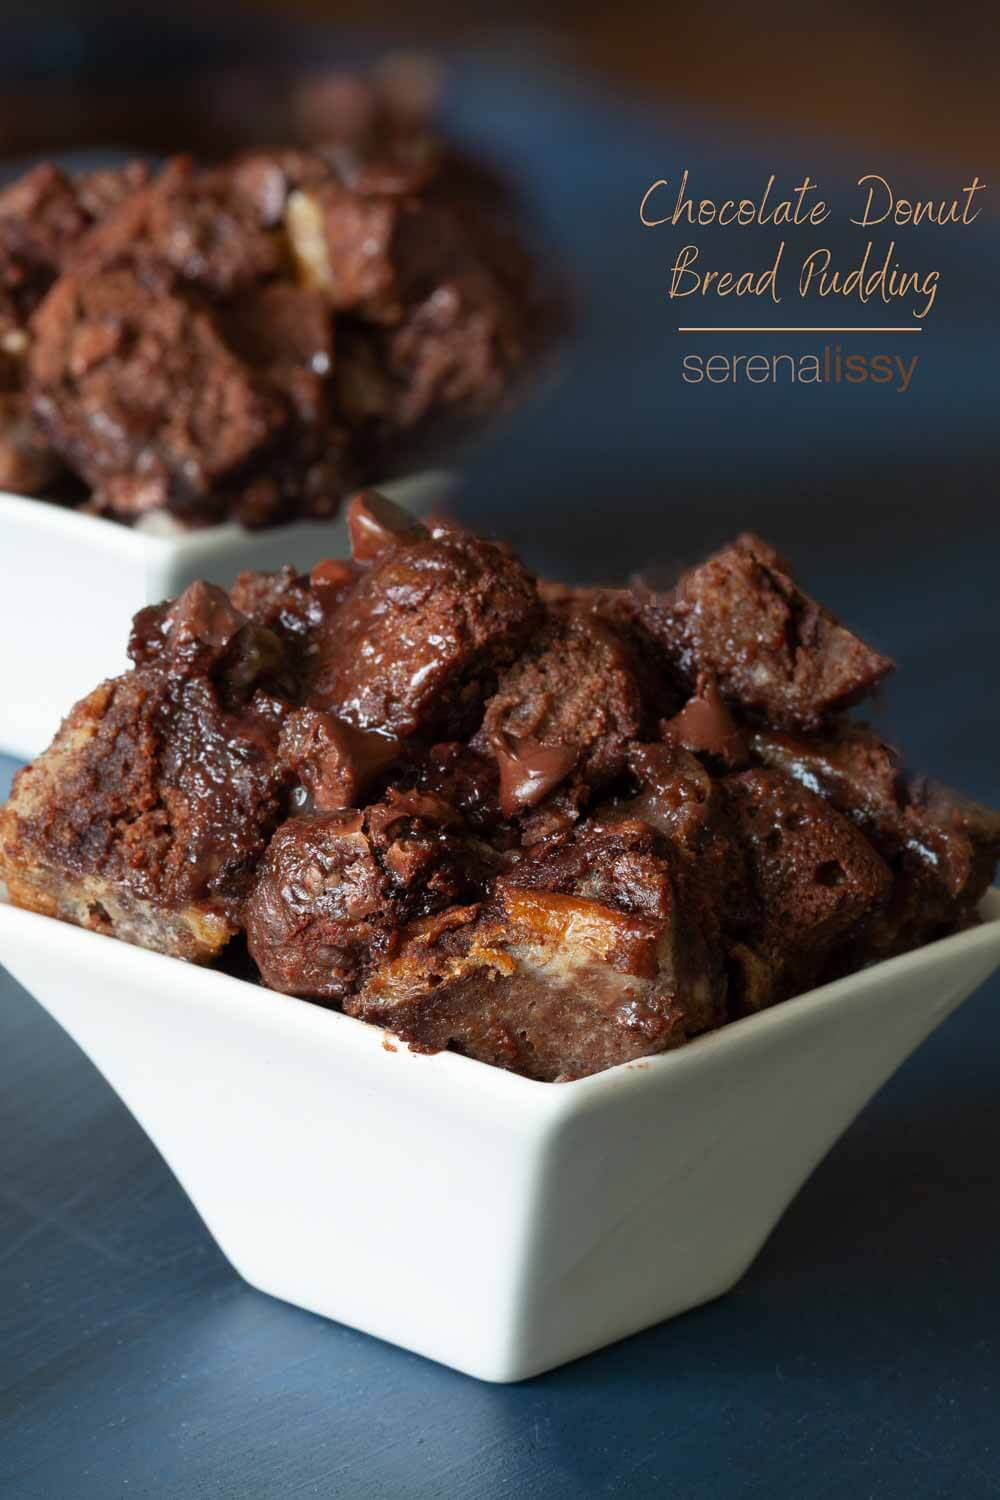 Chocolate Donut Bread Pudding in bowls